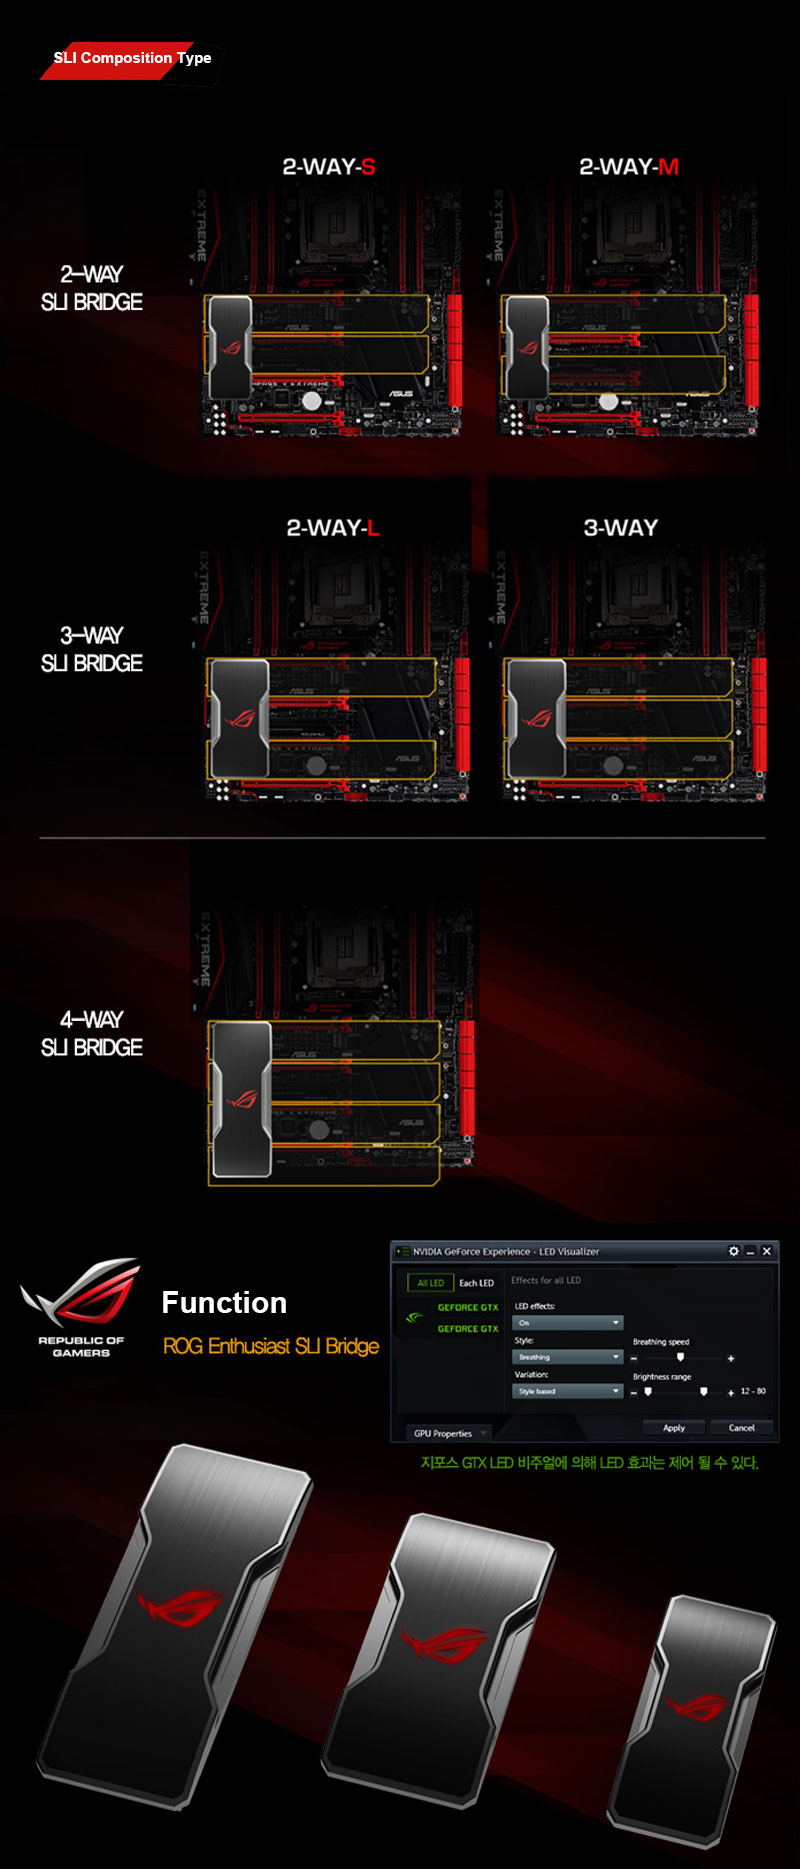 Asus Rog Enthusiast Sli Bridge Graphics Card 4 Way Ebay Theee With A Available In Two Three And Four Configurations For Extensive Compatibility Nvidia Reference